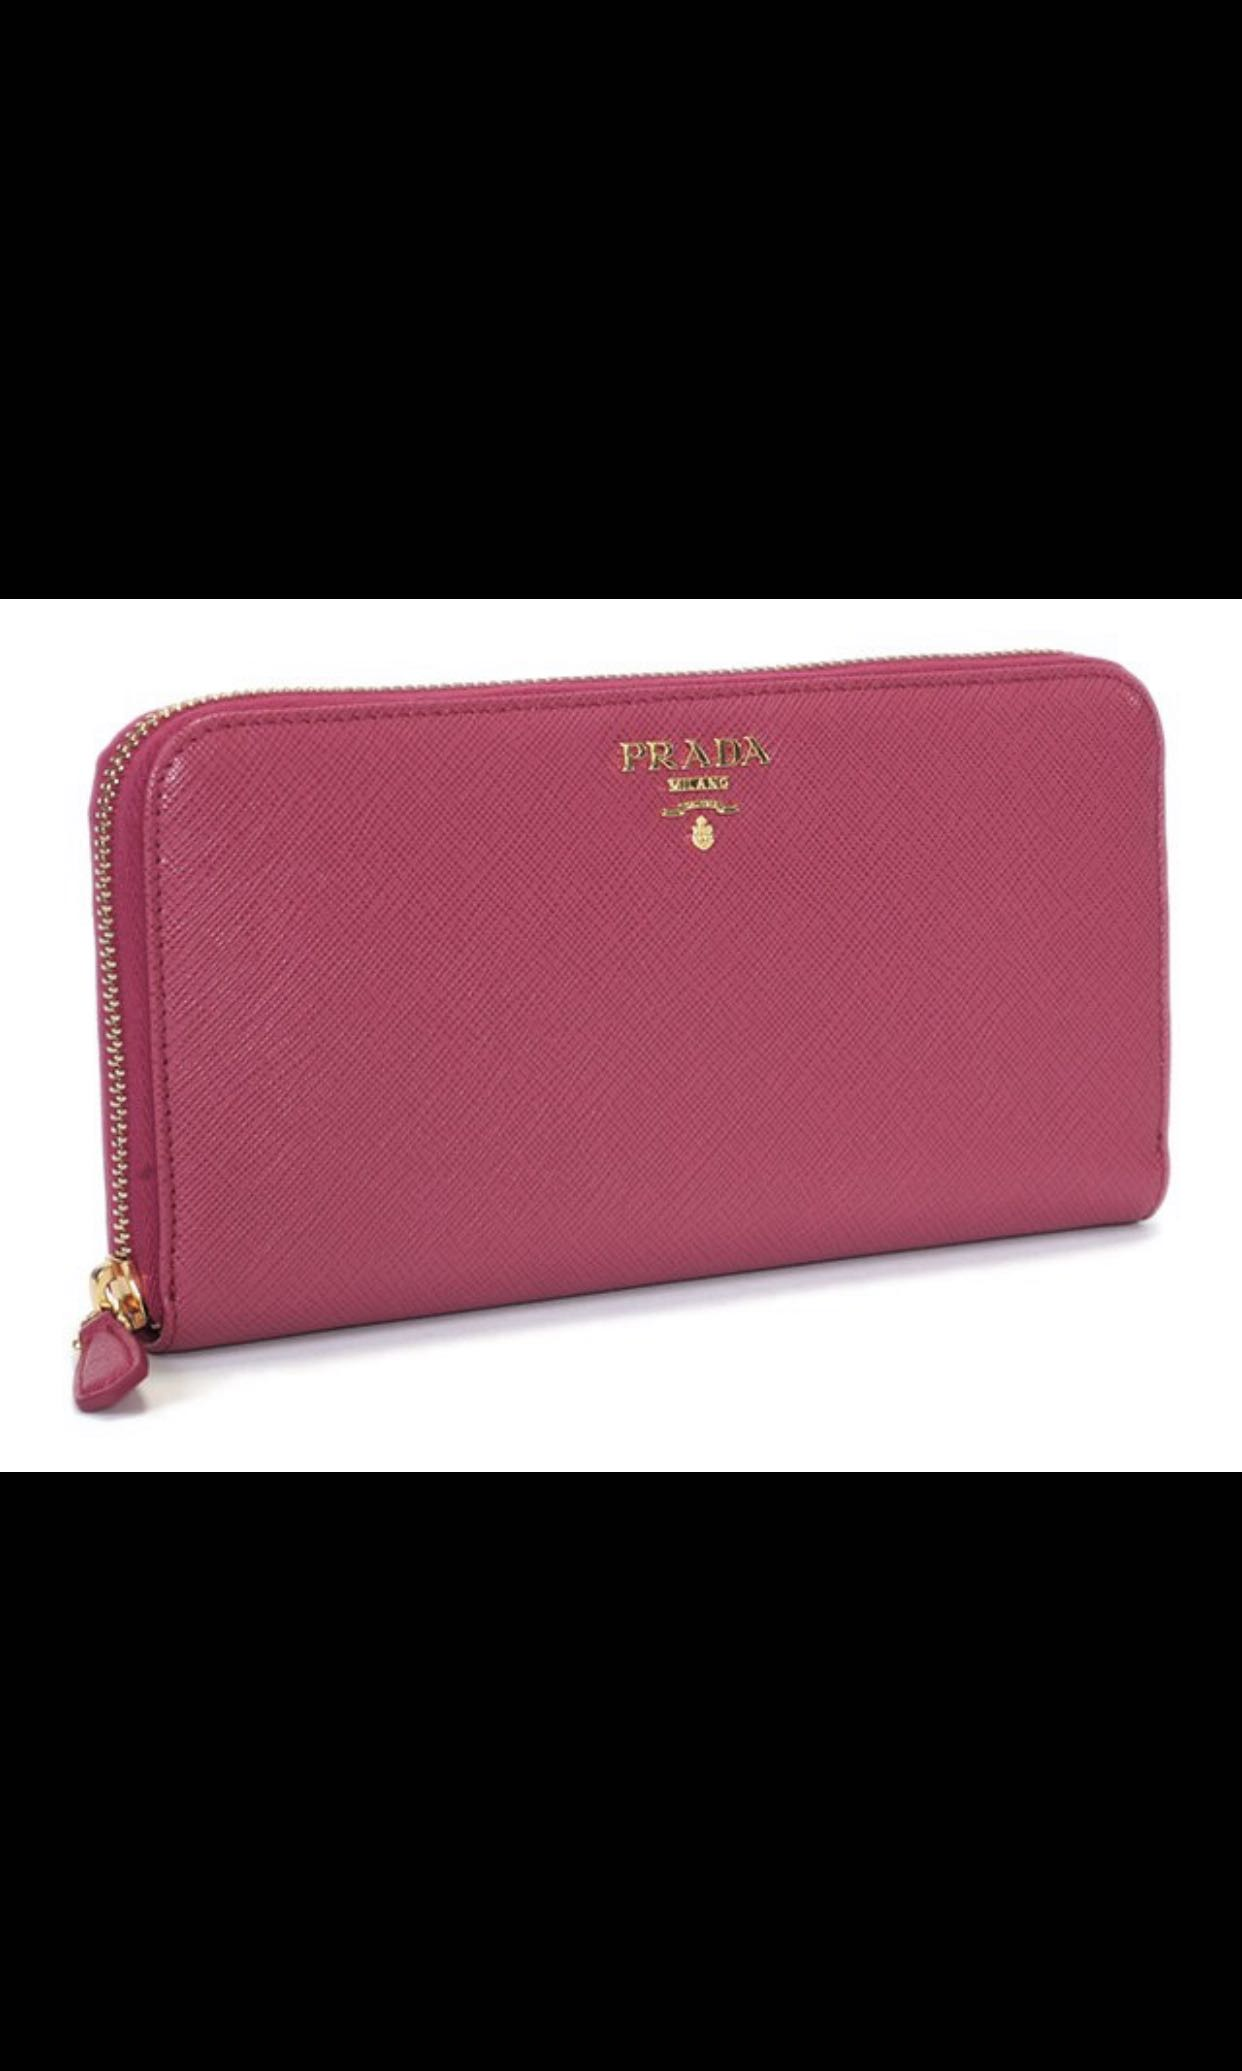 7db2a234d870e5 Prada Saffiano leather Long Zip Around Wallet, Luxury, Bags ...